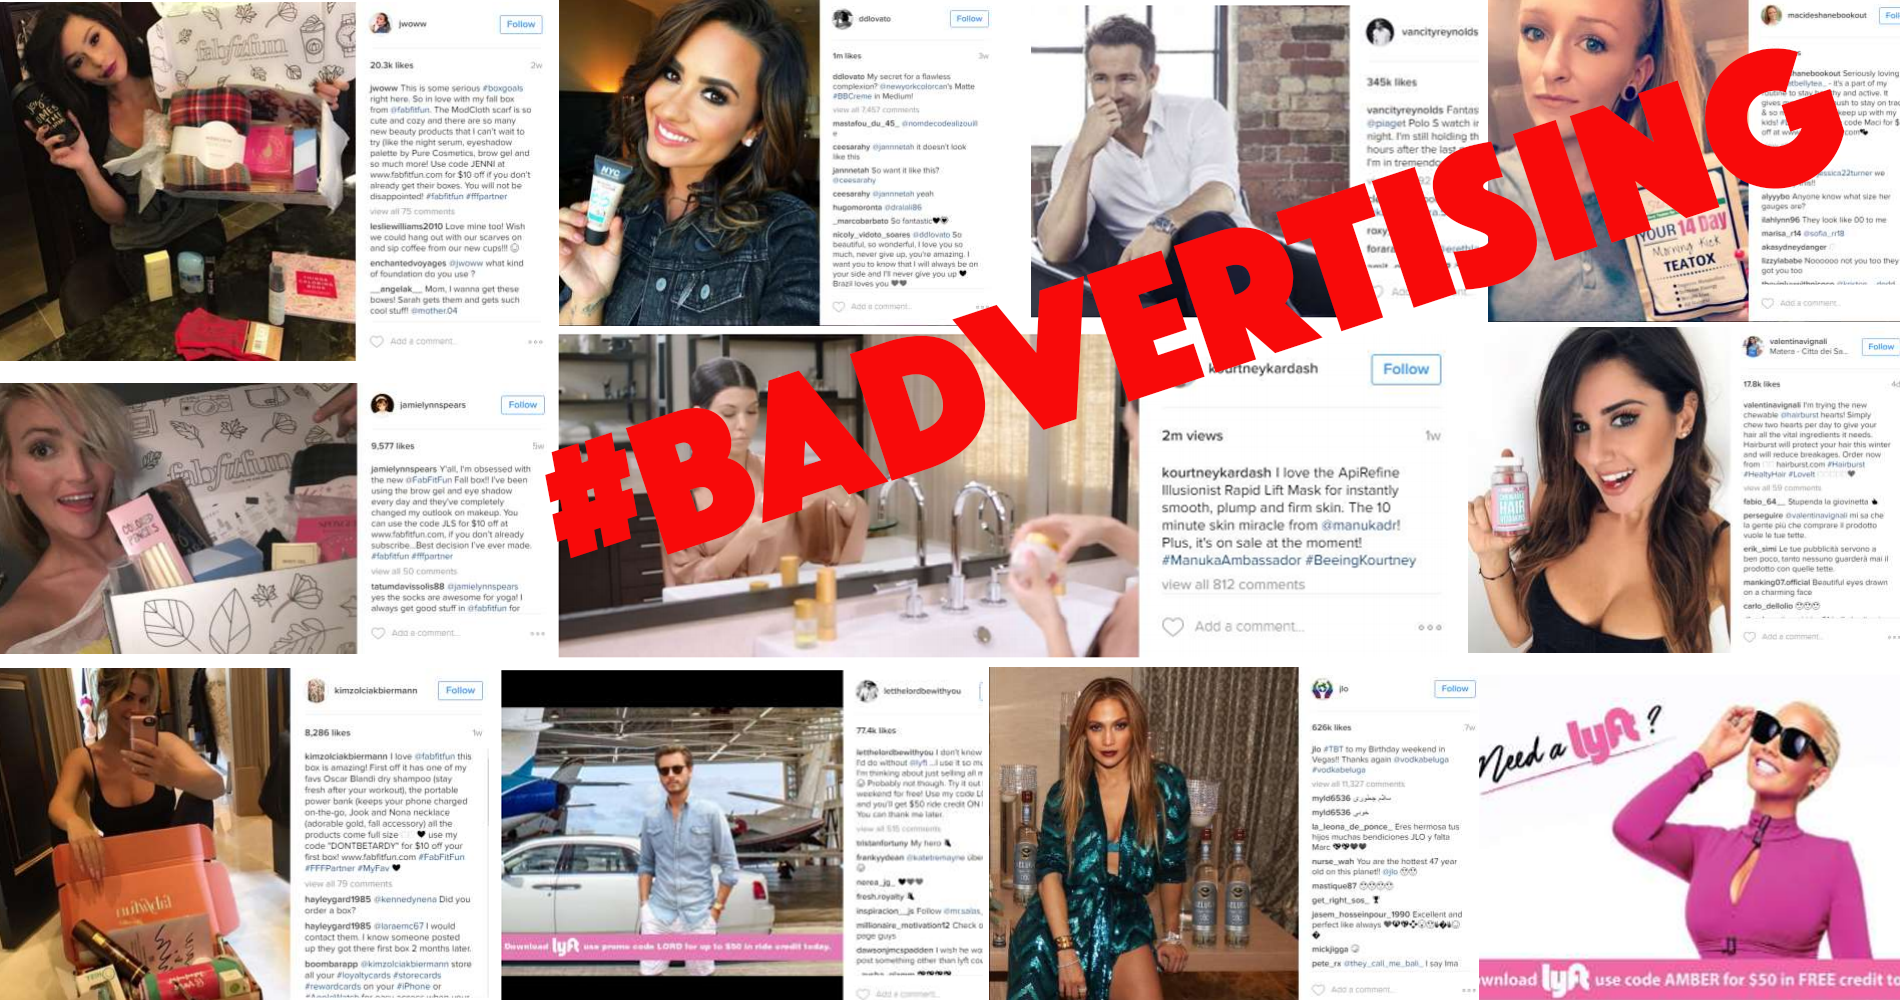 Feds Warn Social Media 'Influencers' To Stop It Already With The Stealth Ads